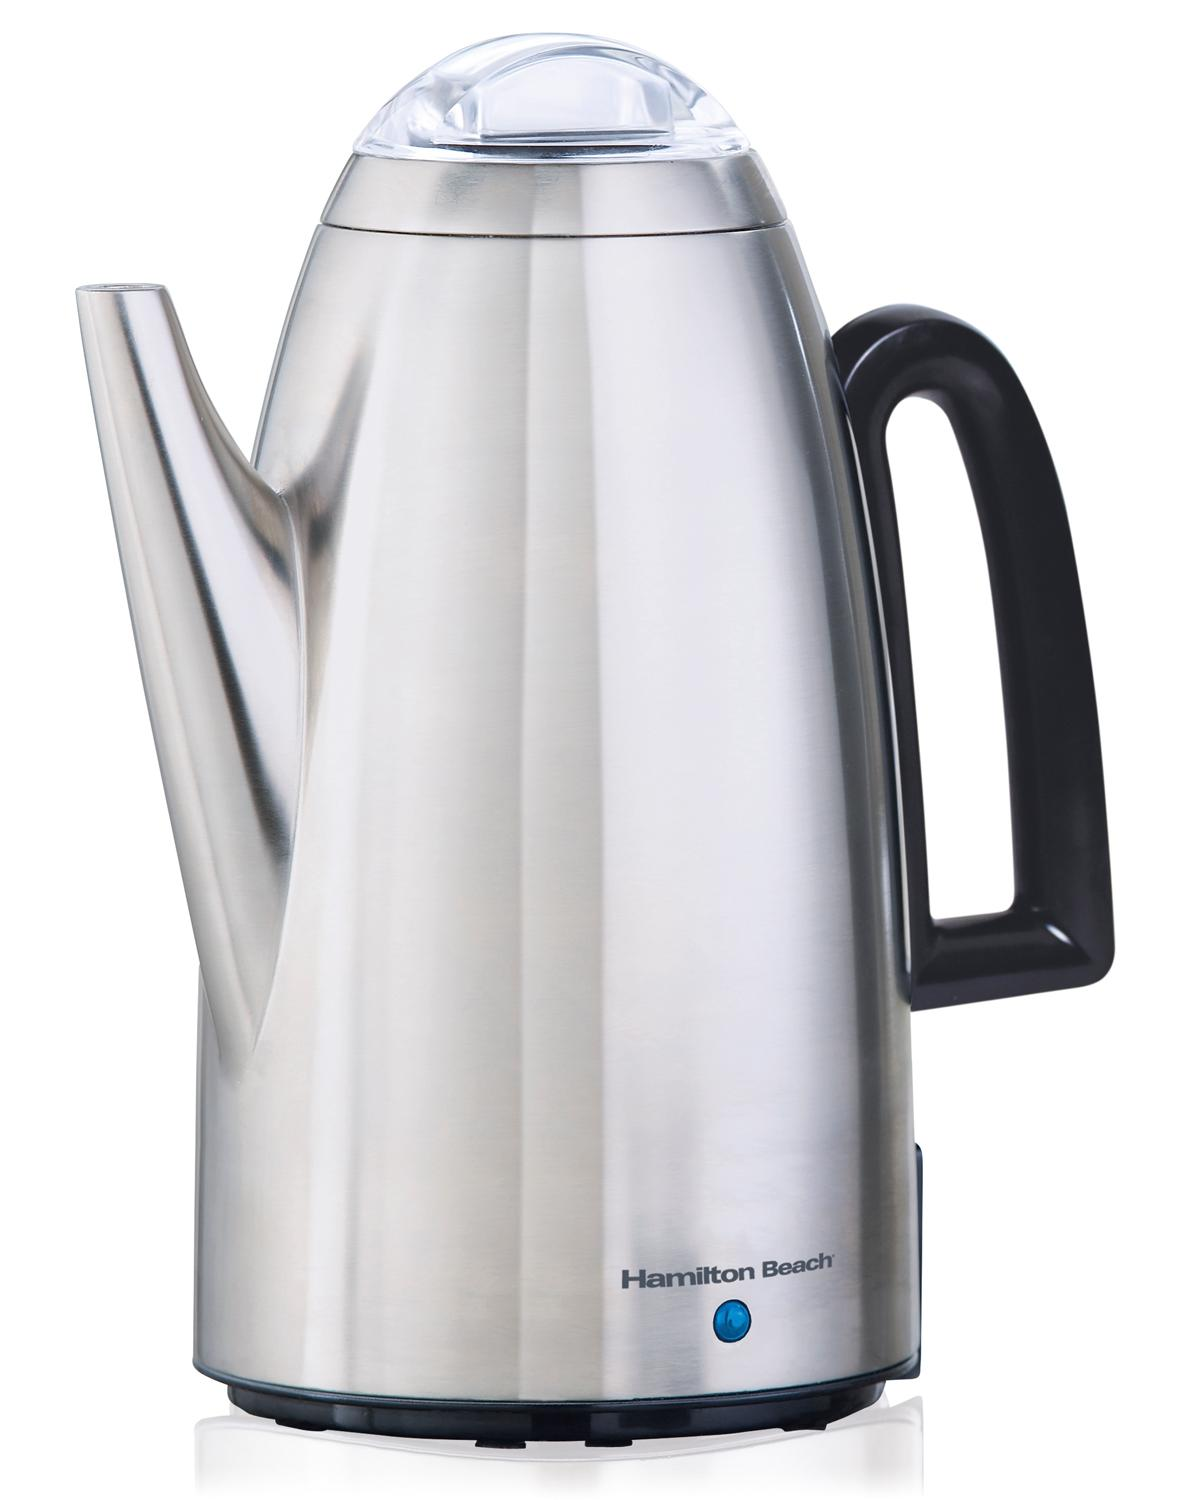 Stainless steel large commercial urns best rated reviews for Best coffee percolator